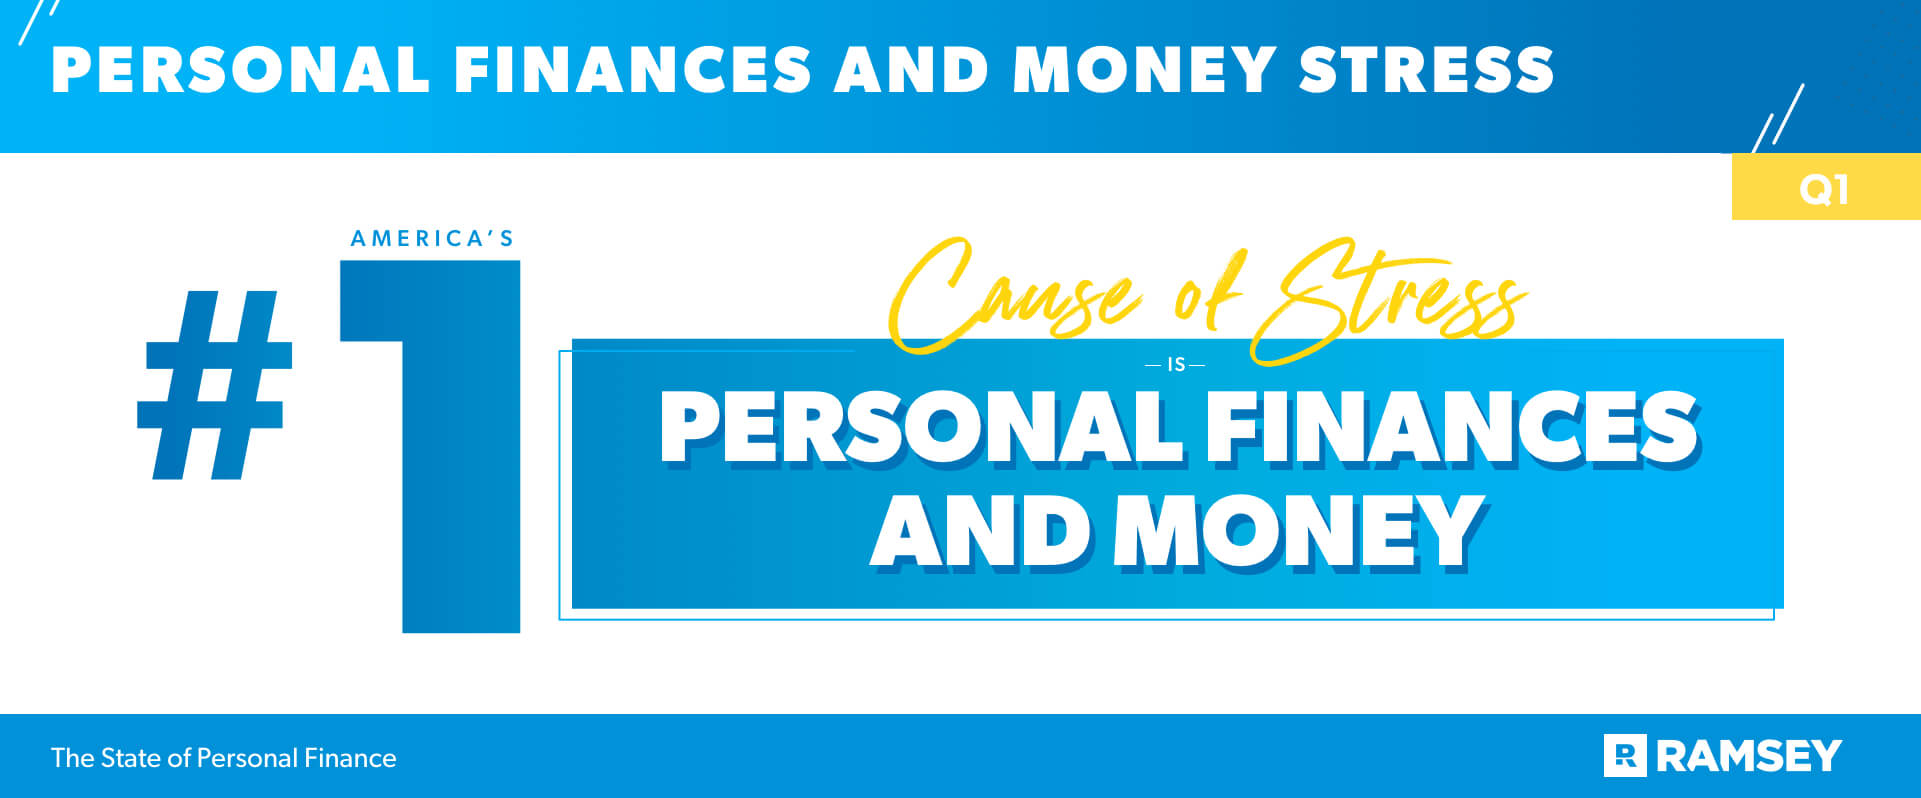 The Number One Cause of Stress is Personal Finances and Money